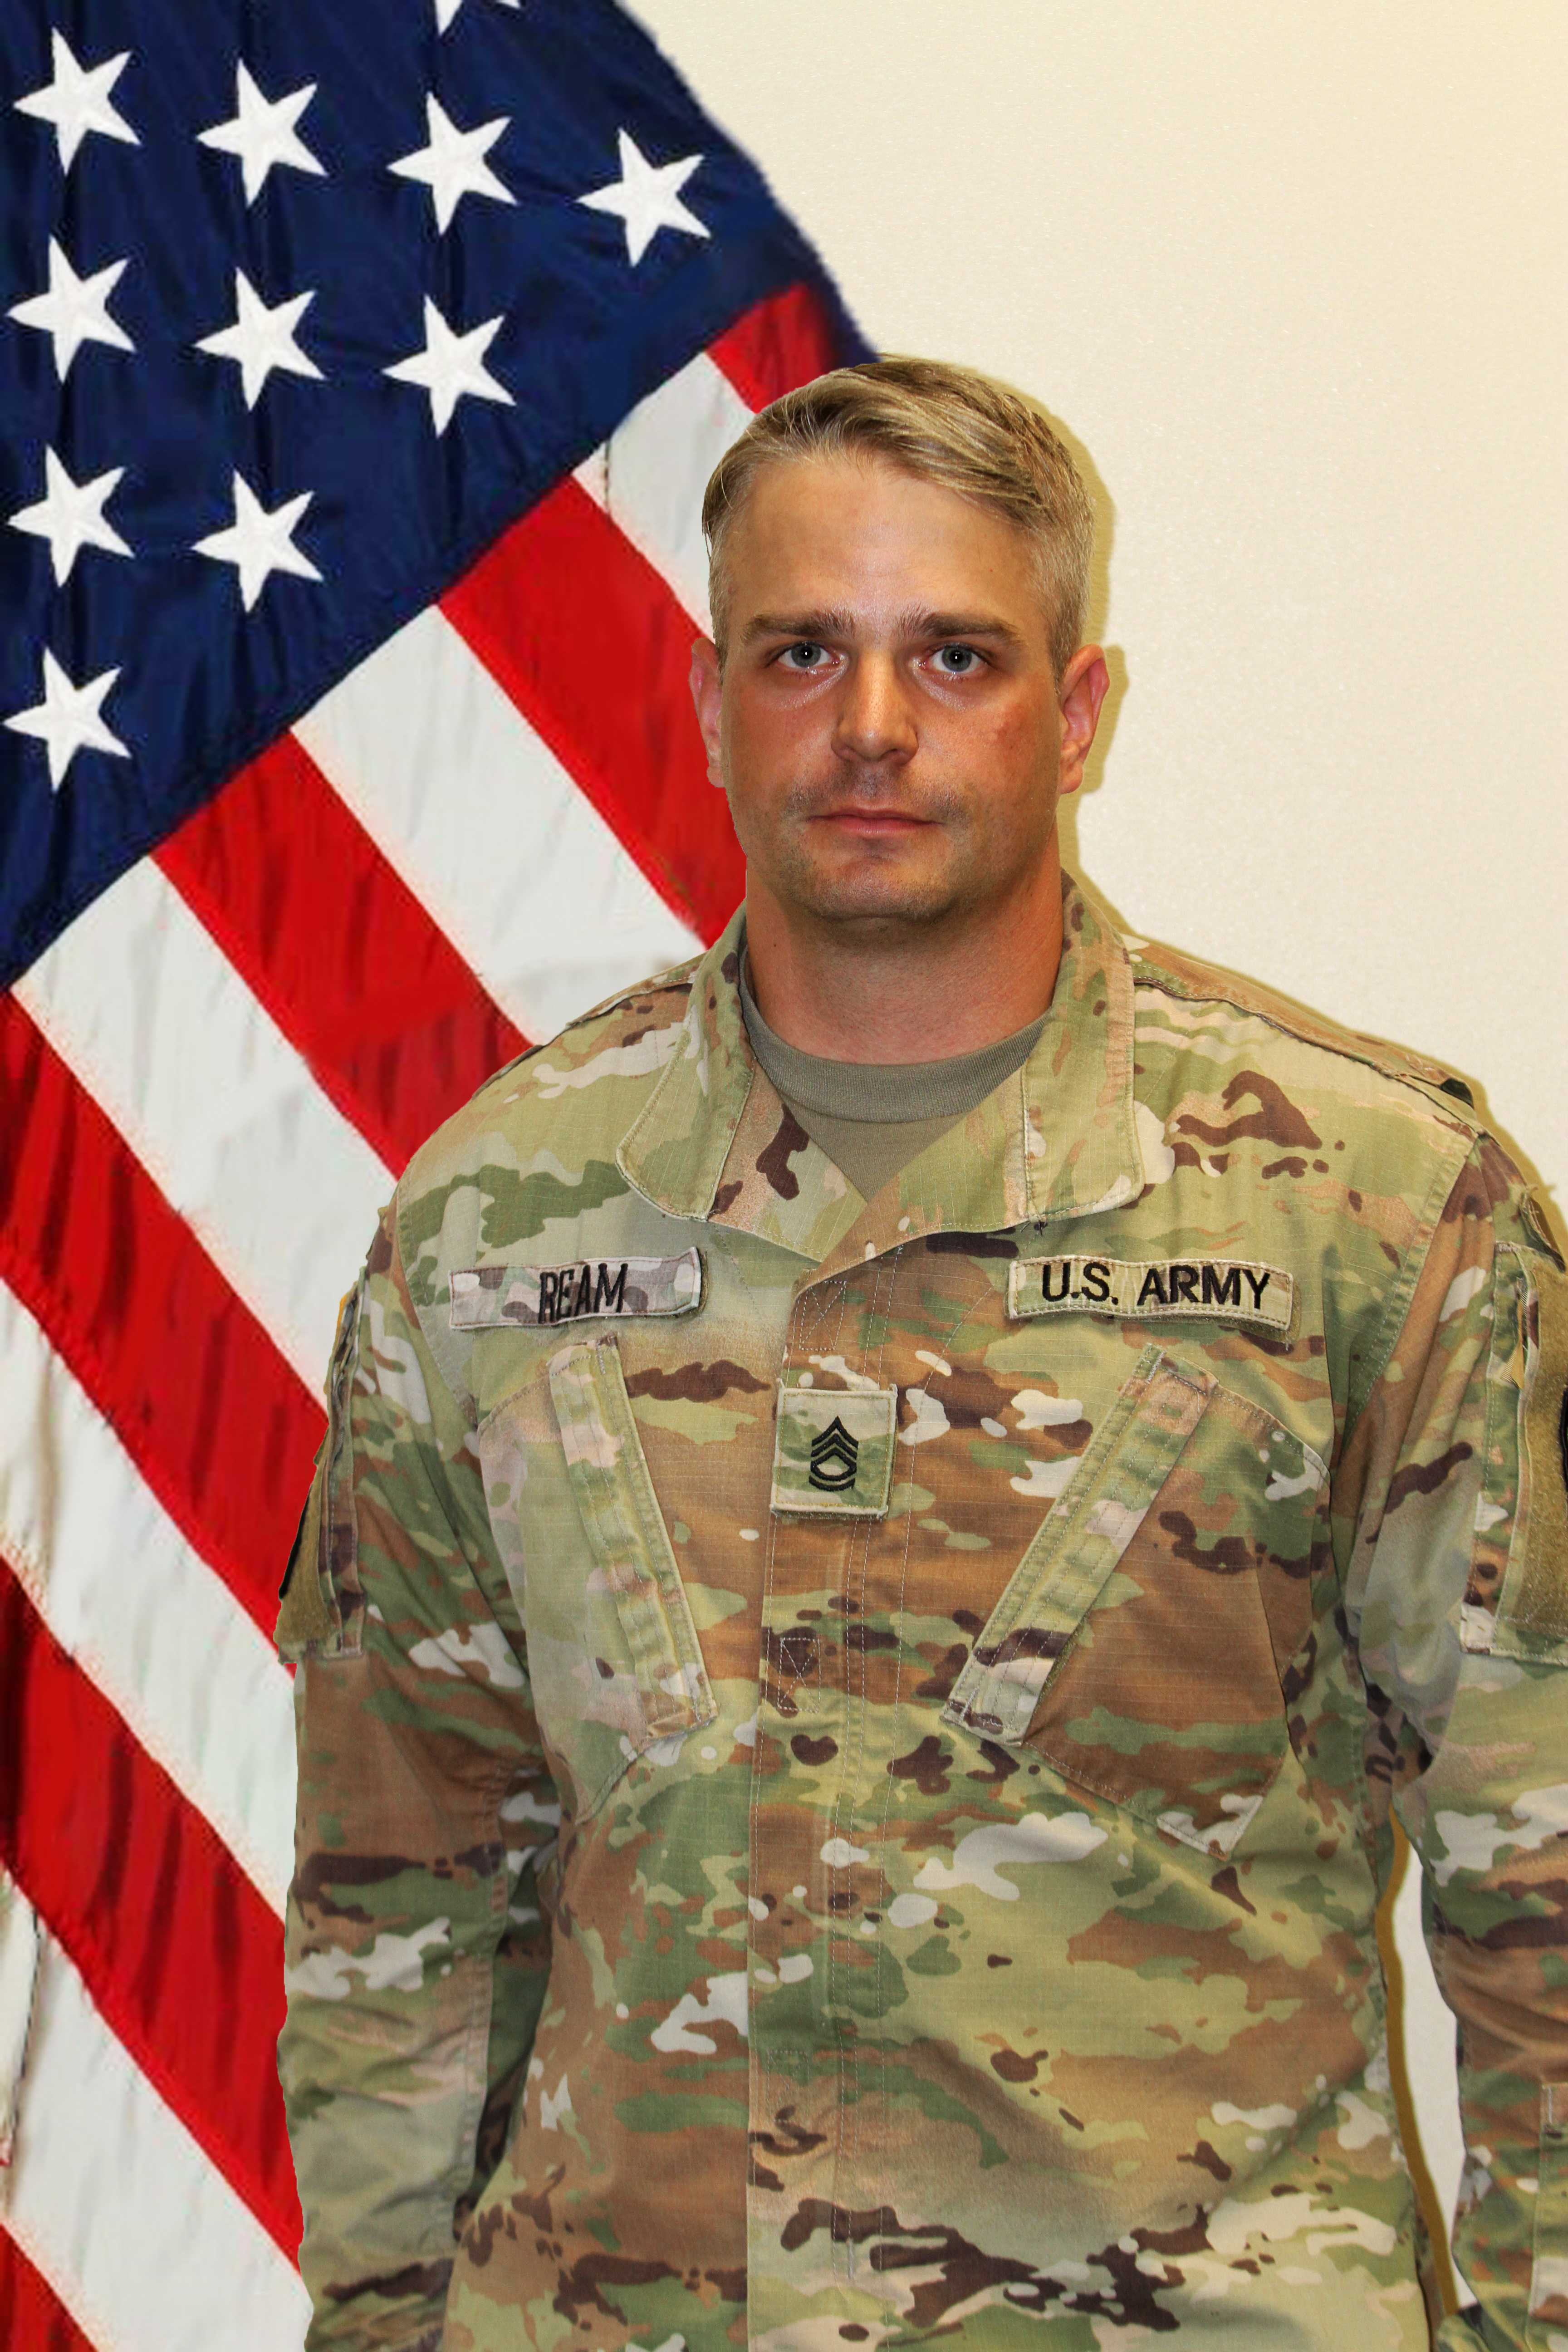 SFC Ream, Military Science Instructor